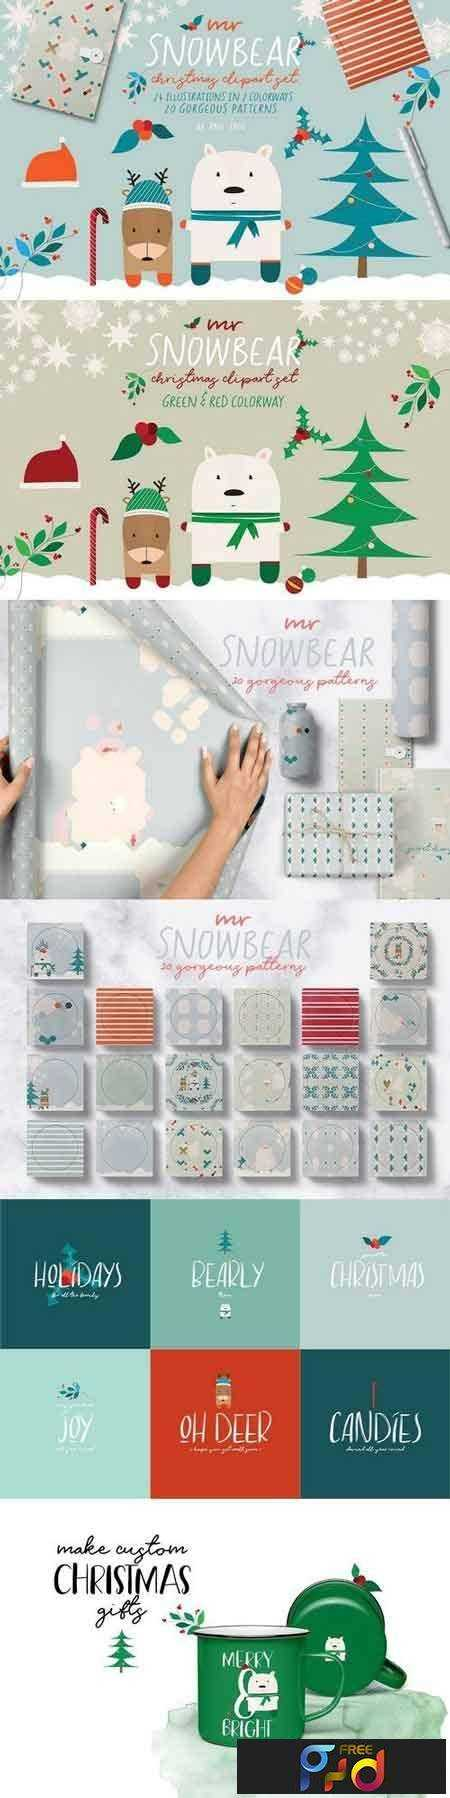 1801064 Mr Snowbear Clipart Set 2160731 1